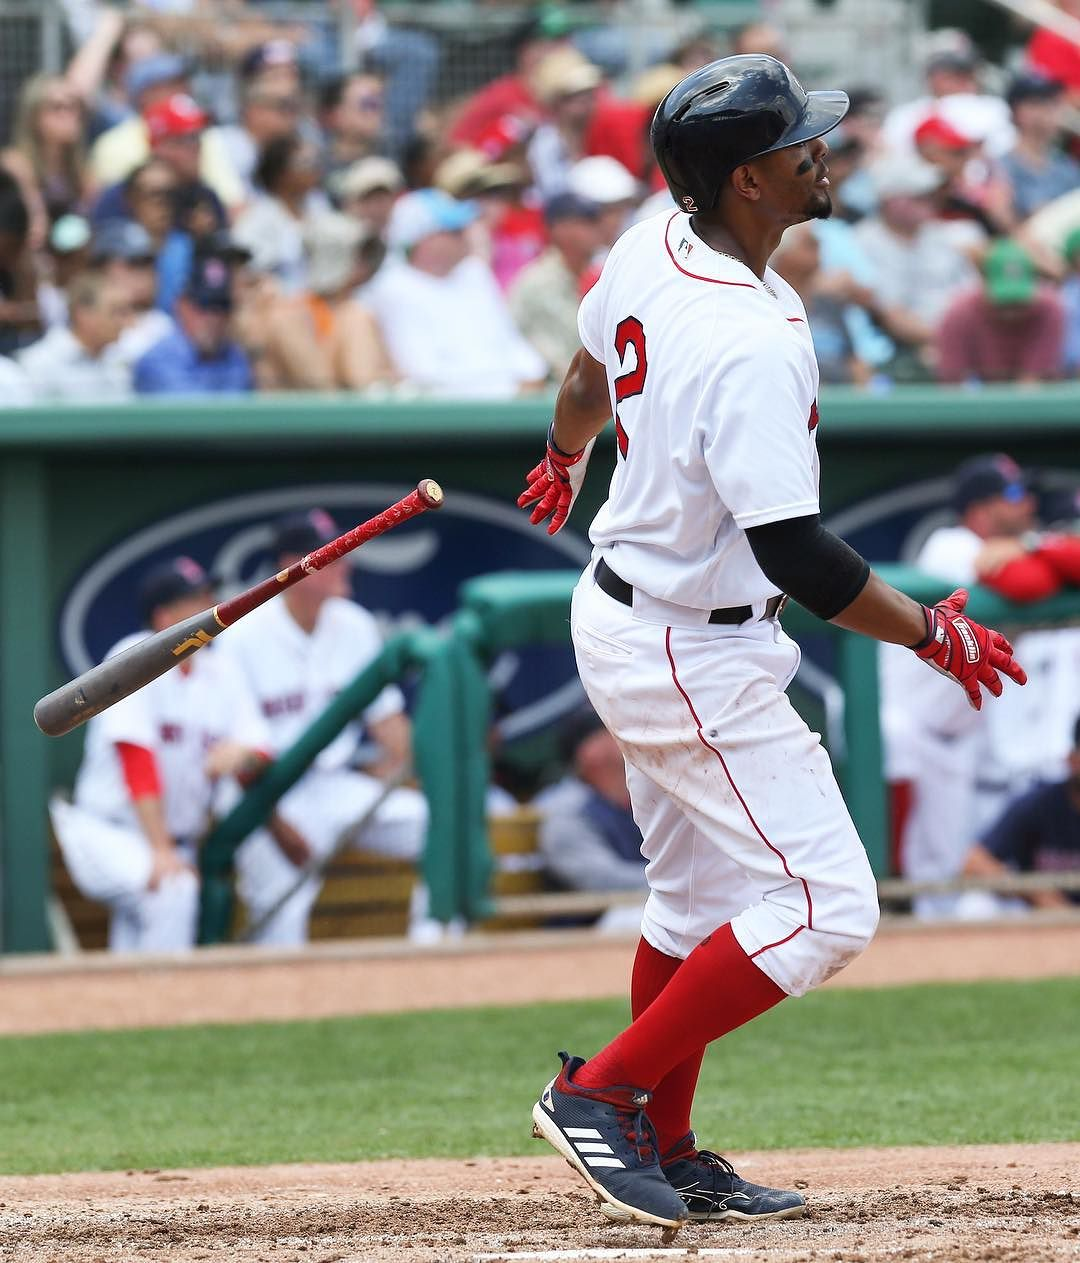 Xander Bogaerts Drove in Two Runs for the #RedSox Today.